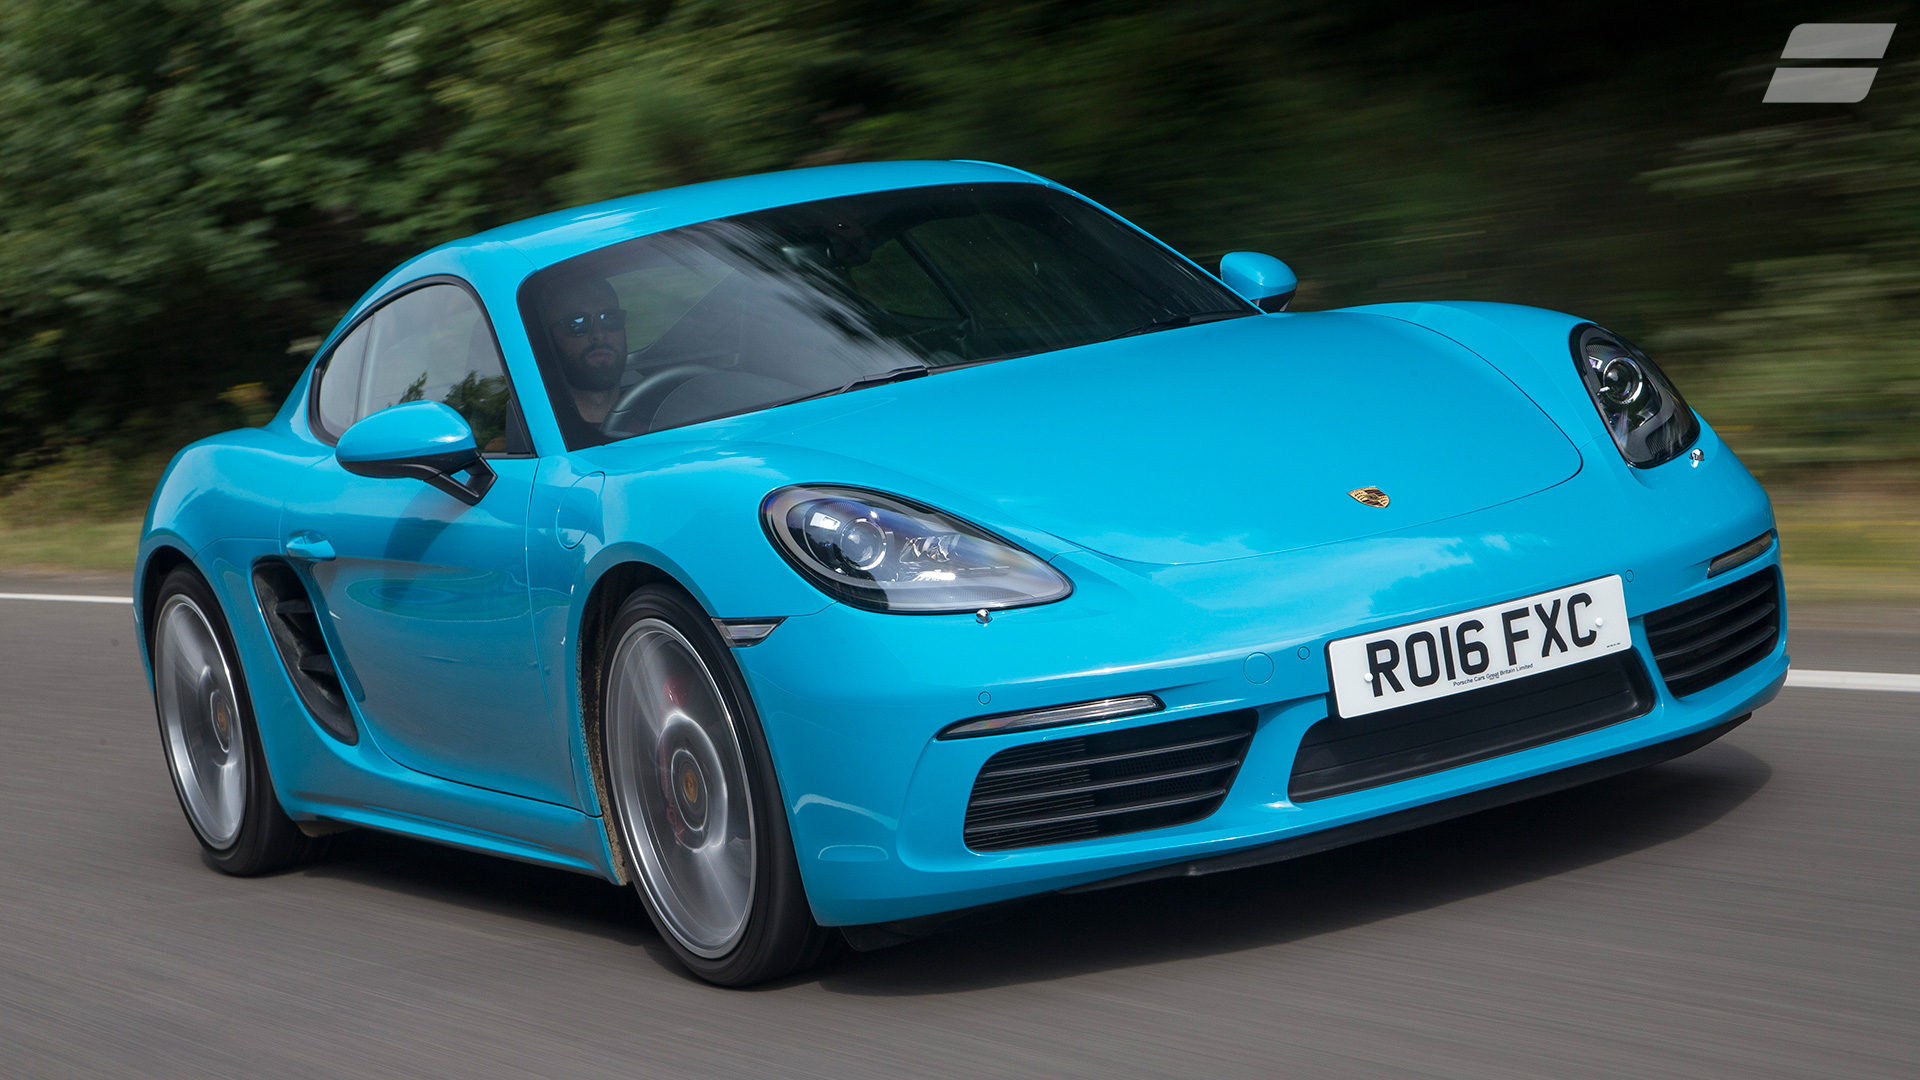 used porsche 718 cayman s cars for sale on auto trader uk. Black Bedroom Furniture Sets. Home Design Ideas